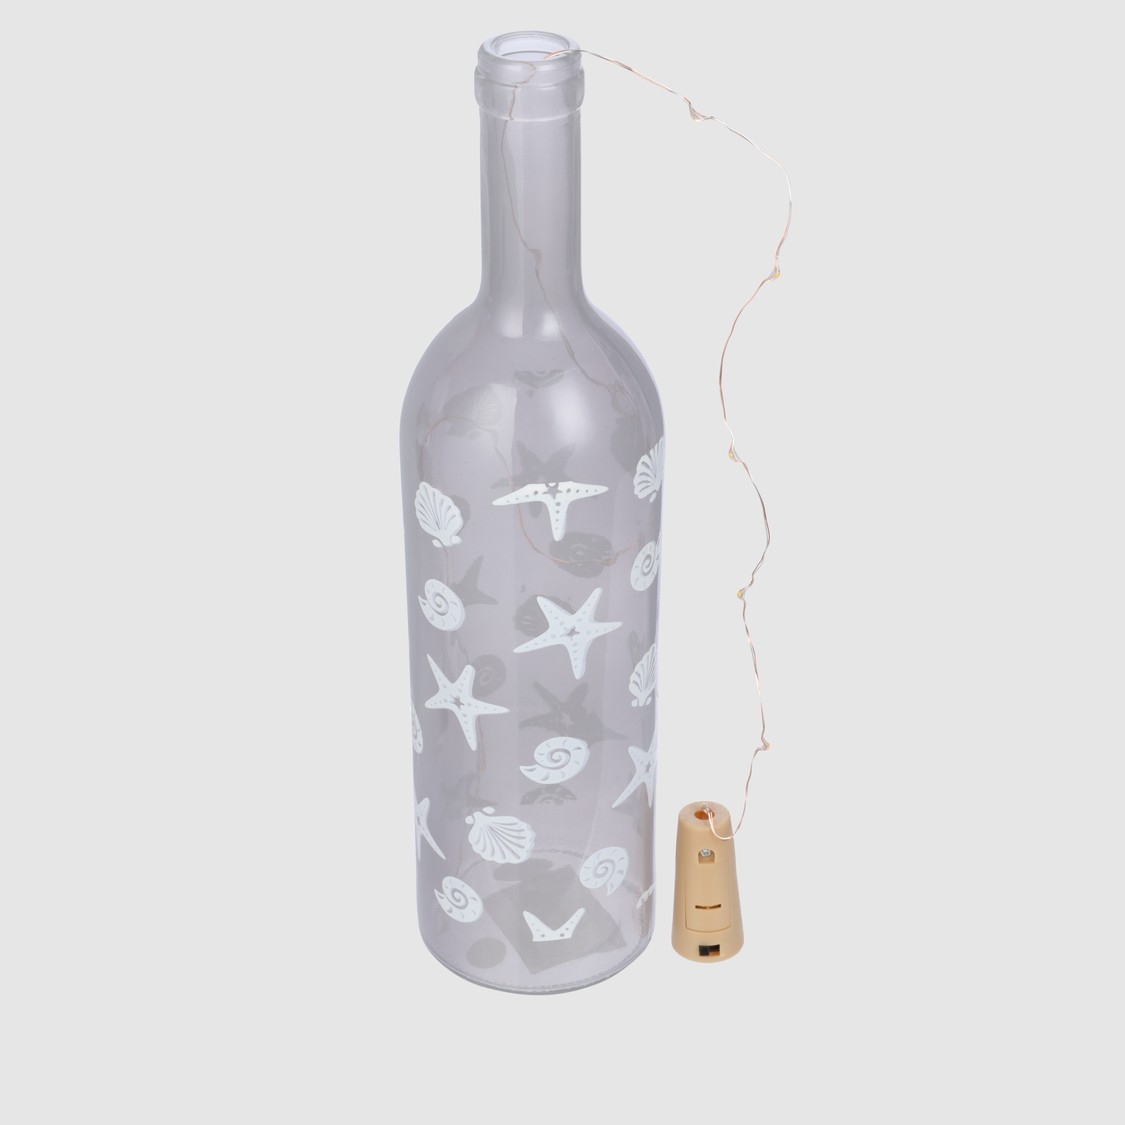 Decorative Bottle with Fairy Lights